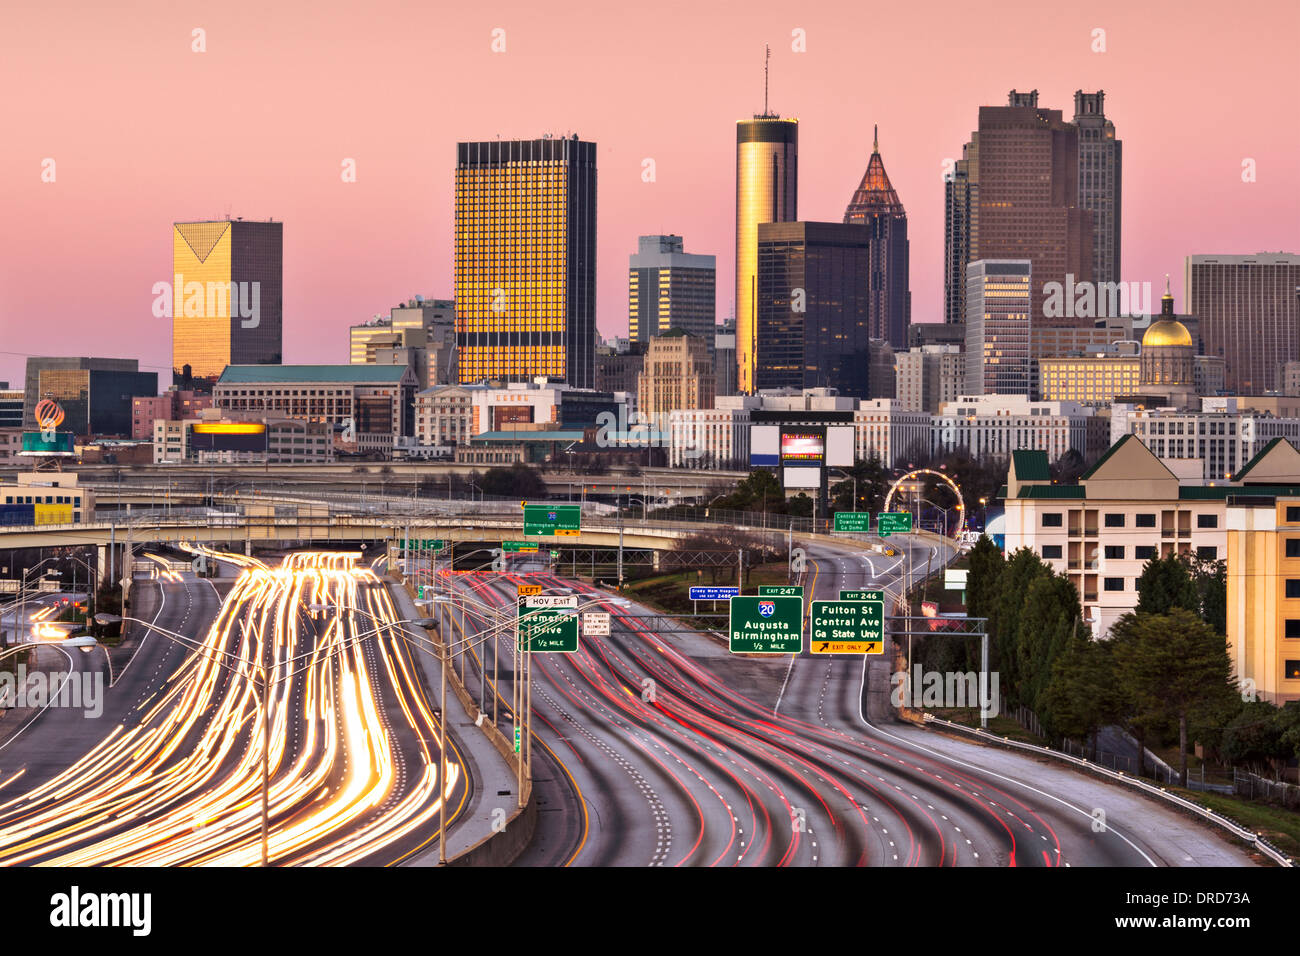 Atlanta, Georgia, USA twilight rush hour. - Stock Image